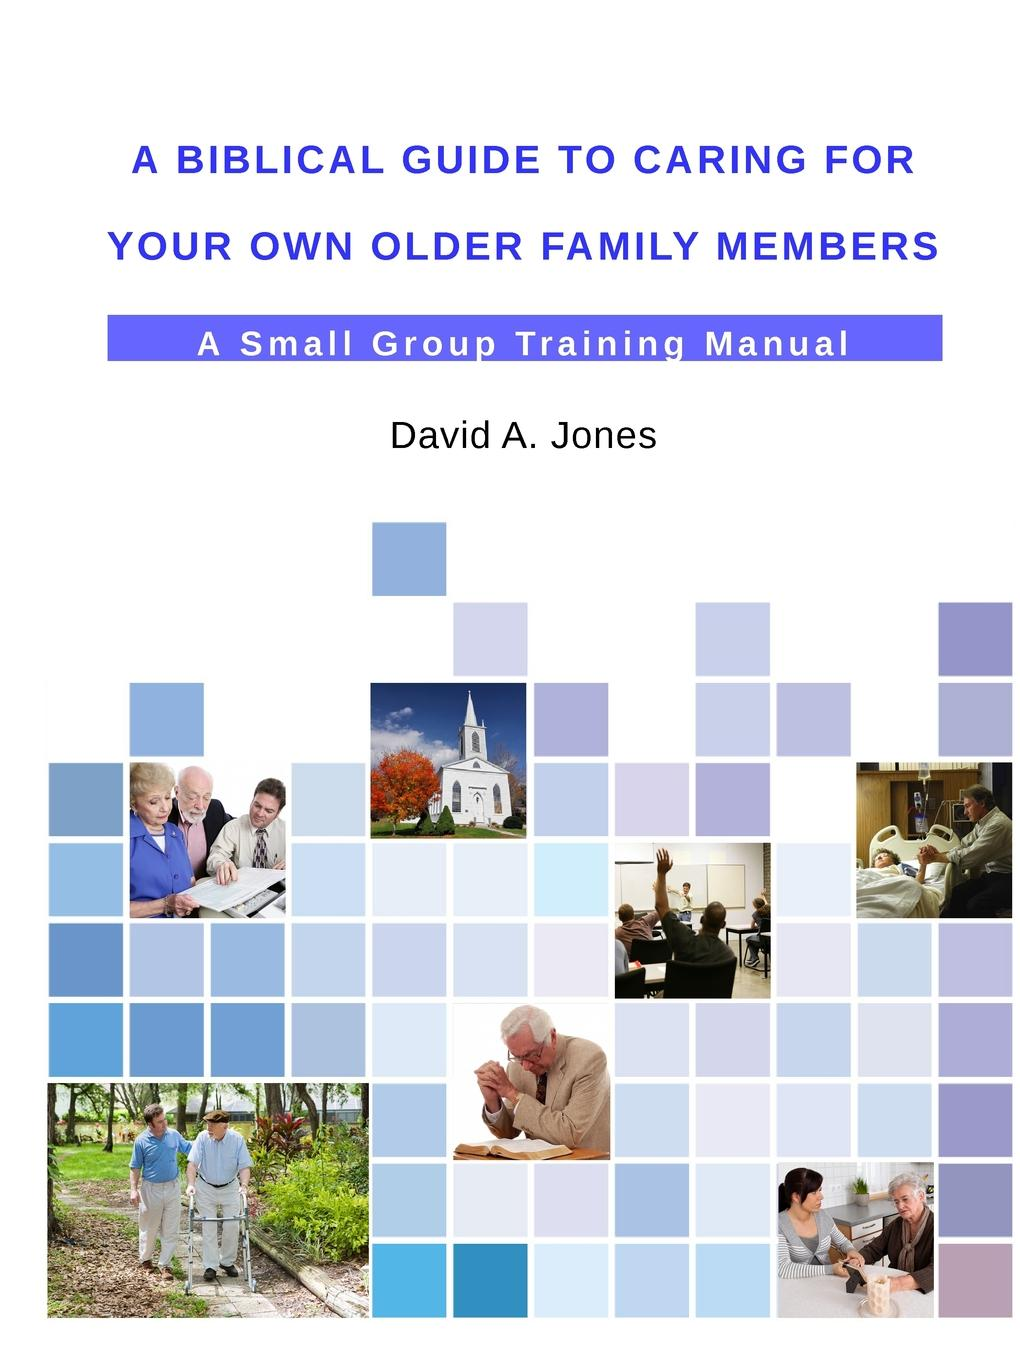 David A. Jones A Biblical Guide to Caring for Your Own Older Family Members david rudd cycleback guide to sports photographs